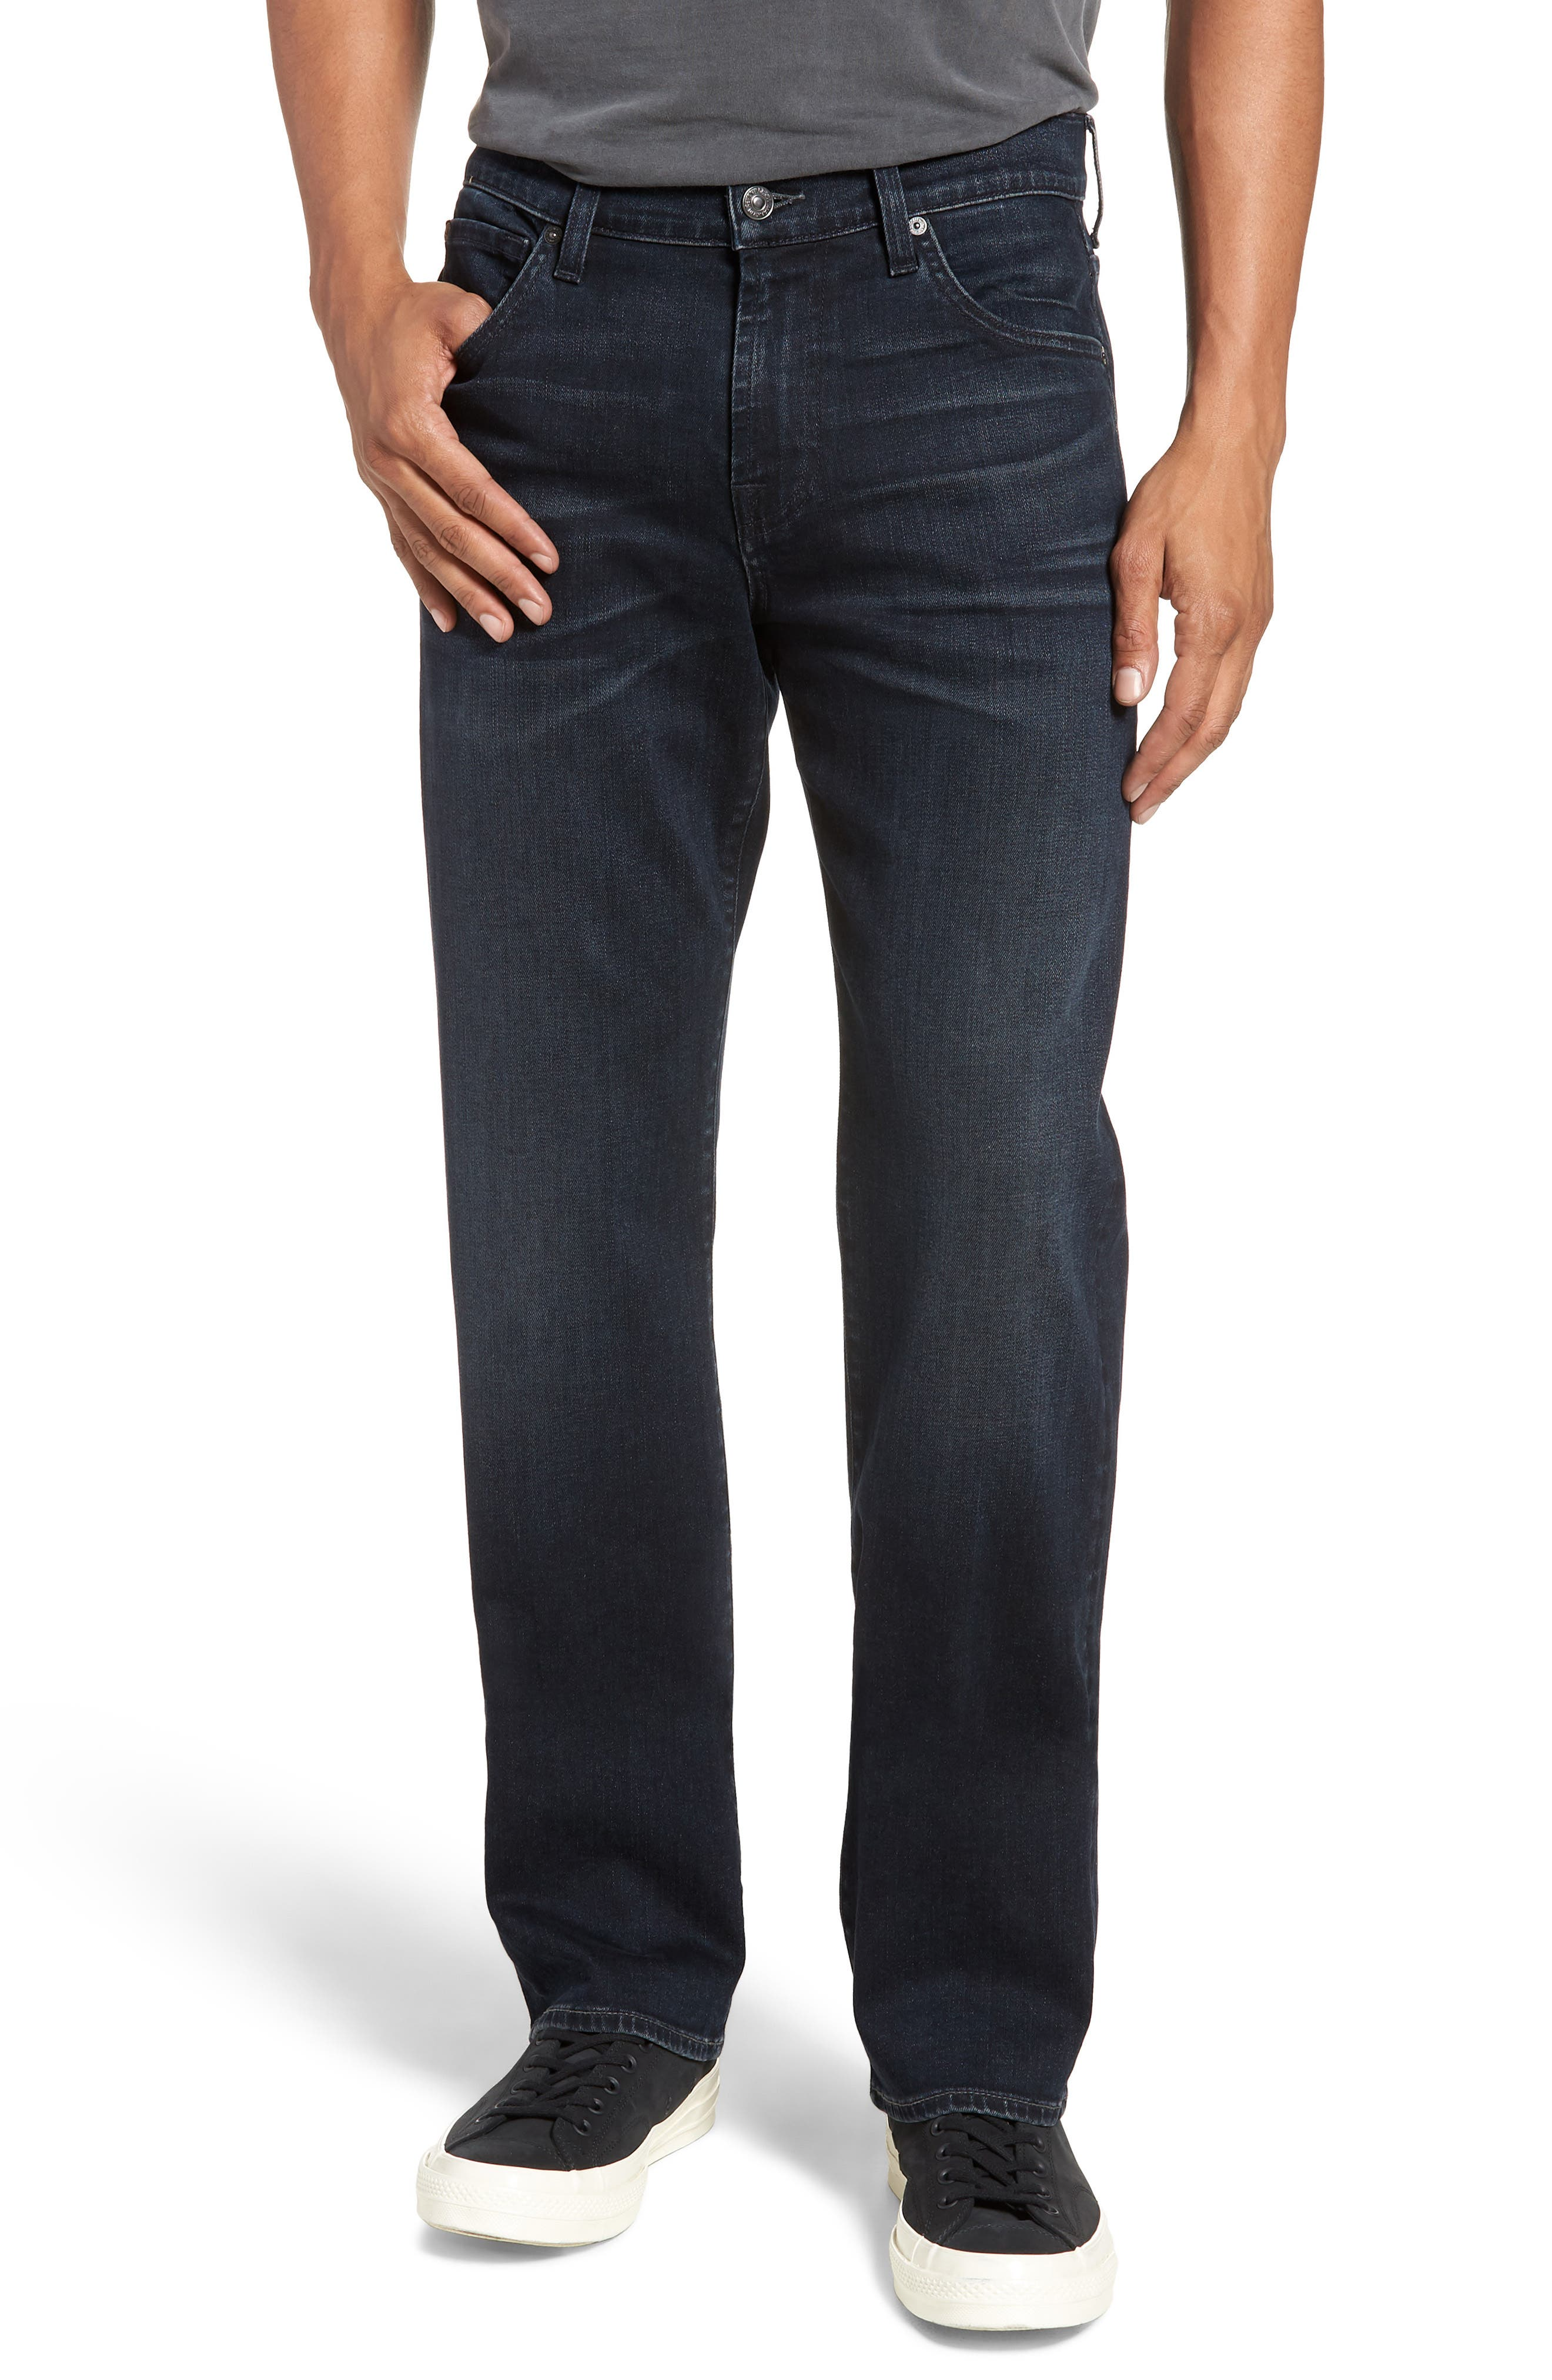 Austyn Relaxed Fit Jeans,                             Main thumbnail 1, color,                             400